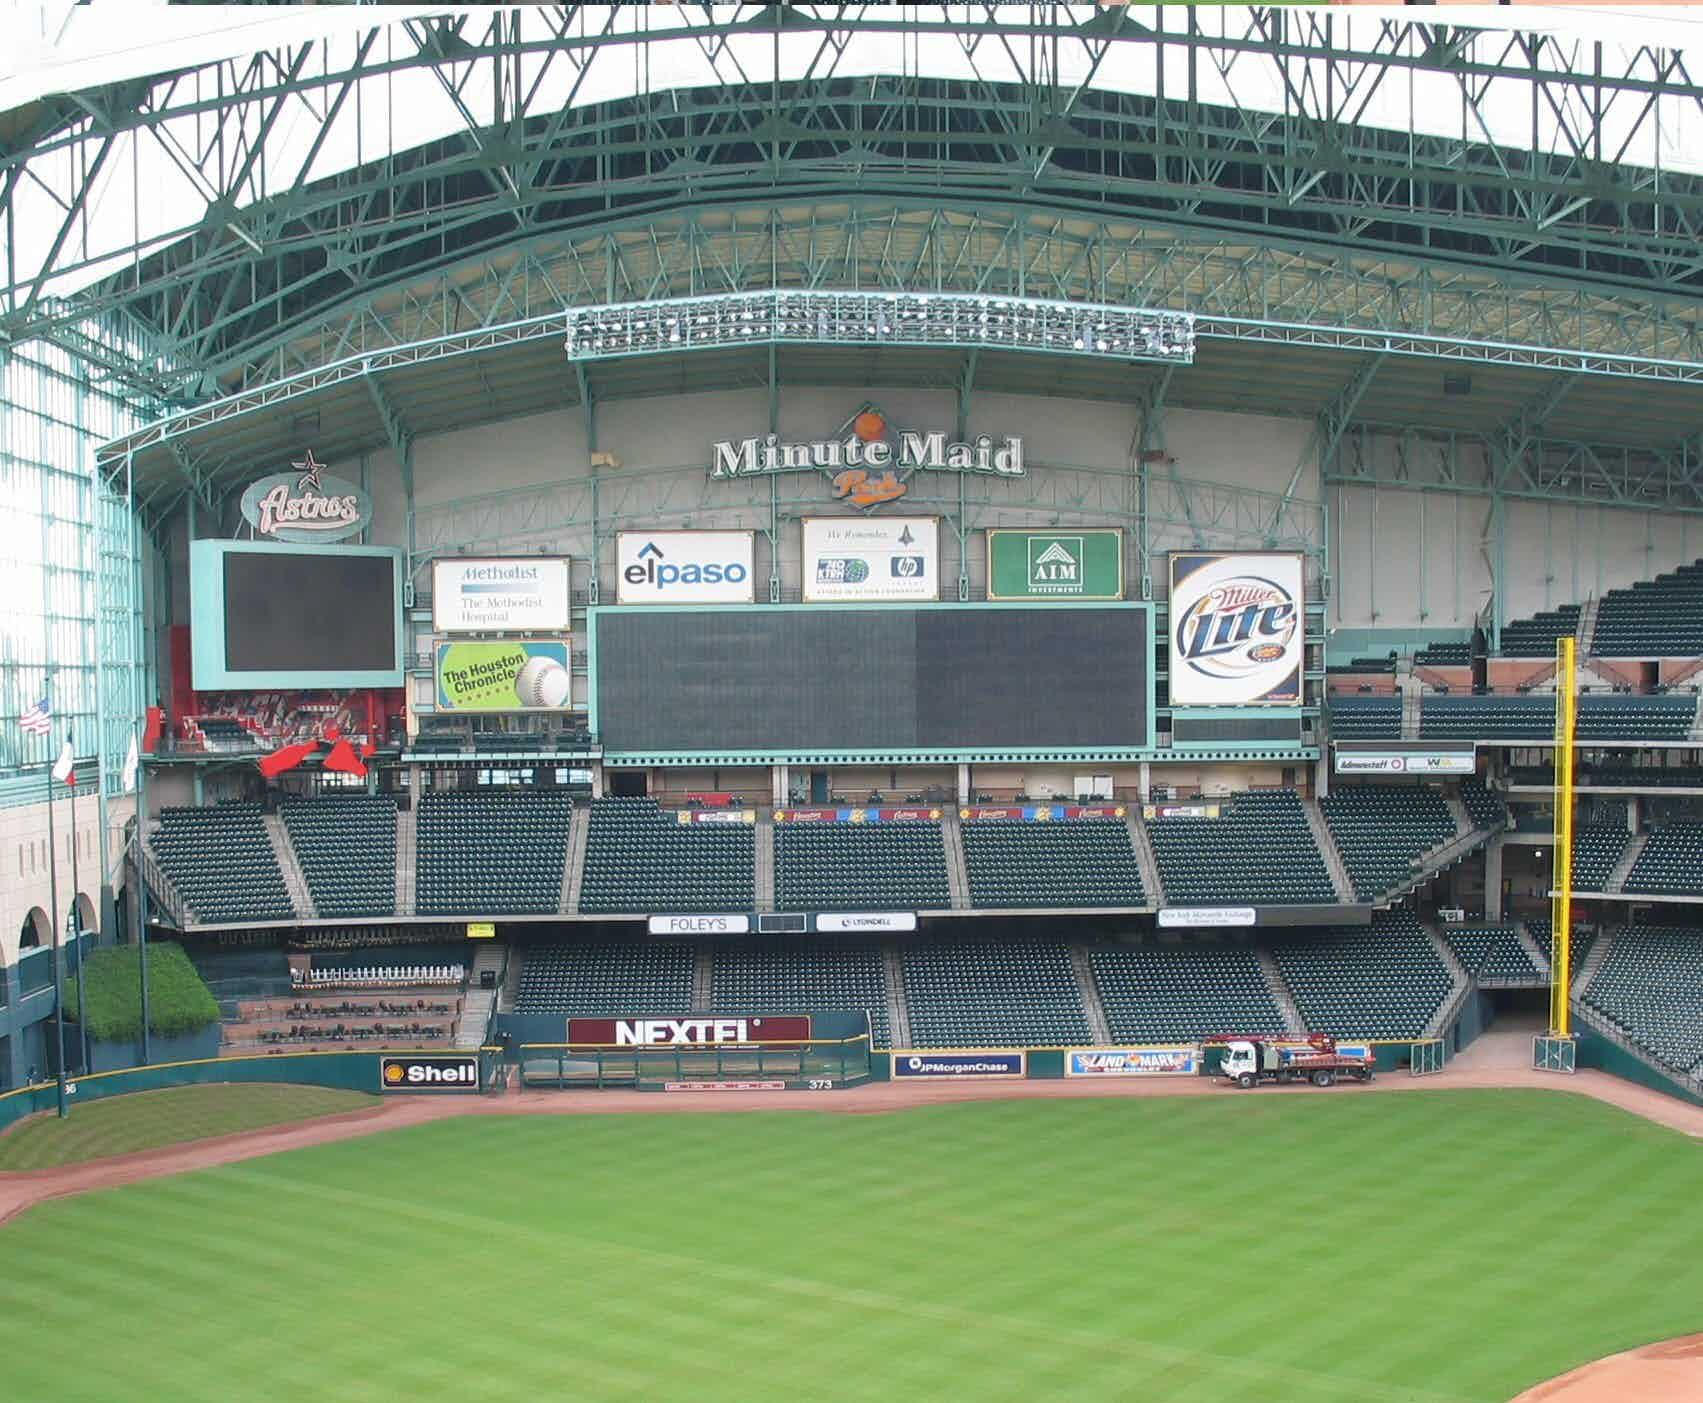 interior of Minute Maid Park